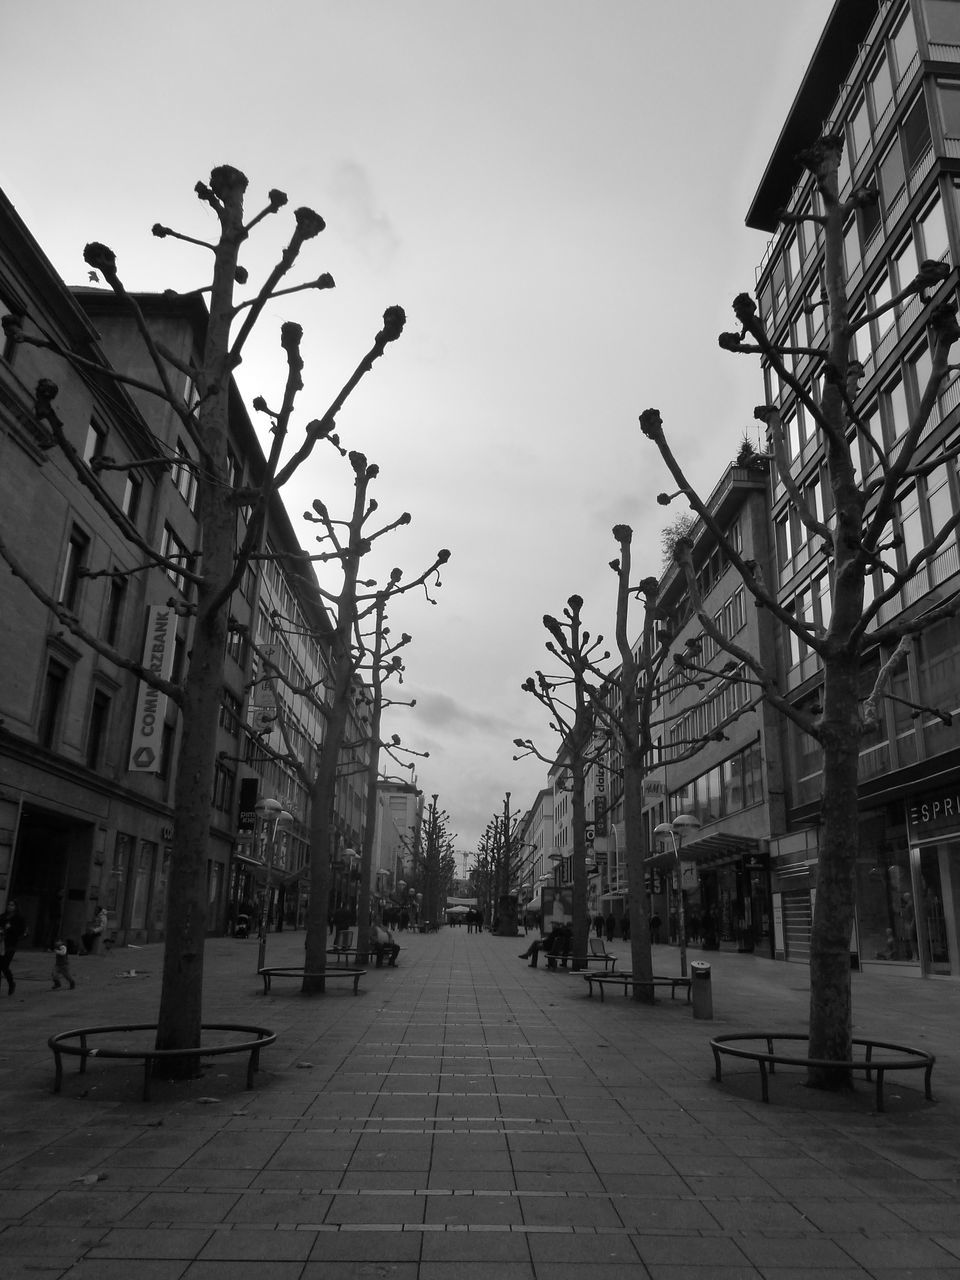 building exterior, architecture, built structure, the way forward, outdoors, sky, city, no people, day, bare tree